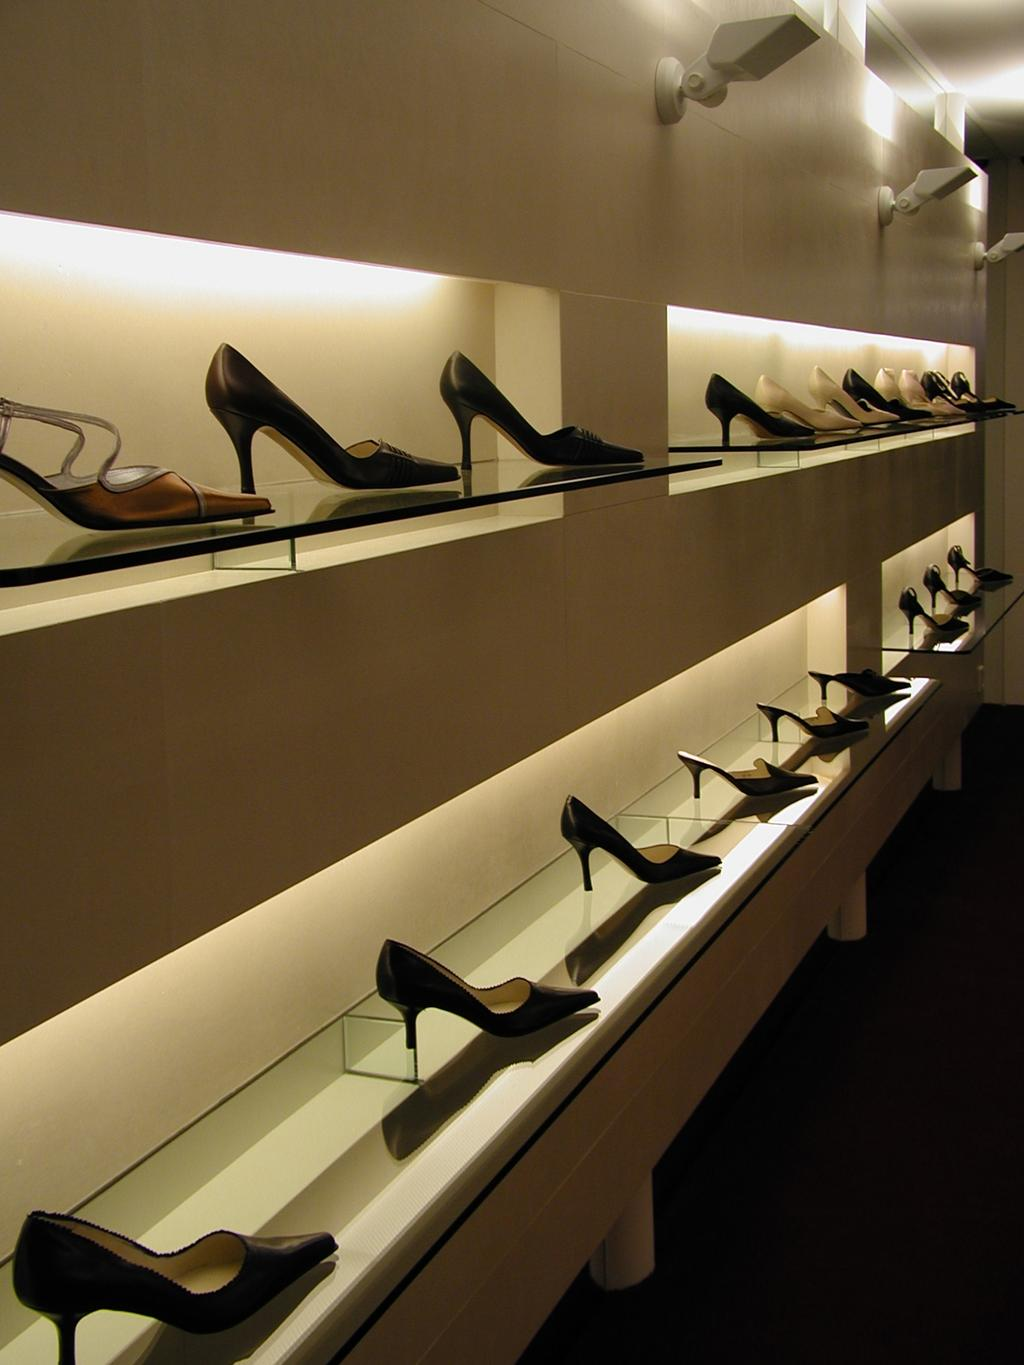 Lulu, Commercial, Architect, Wallflower Architecture + Design, Traditional, Clothing, Footwear, Shoe, High Heel, Heel